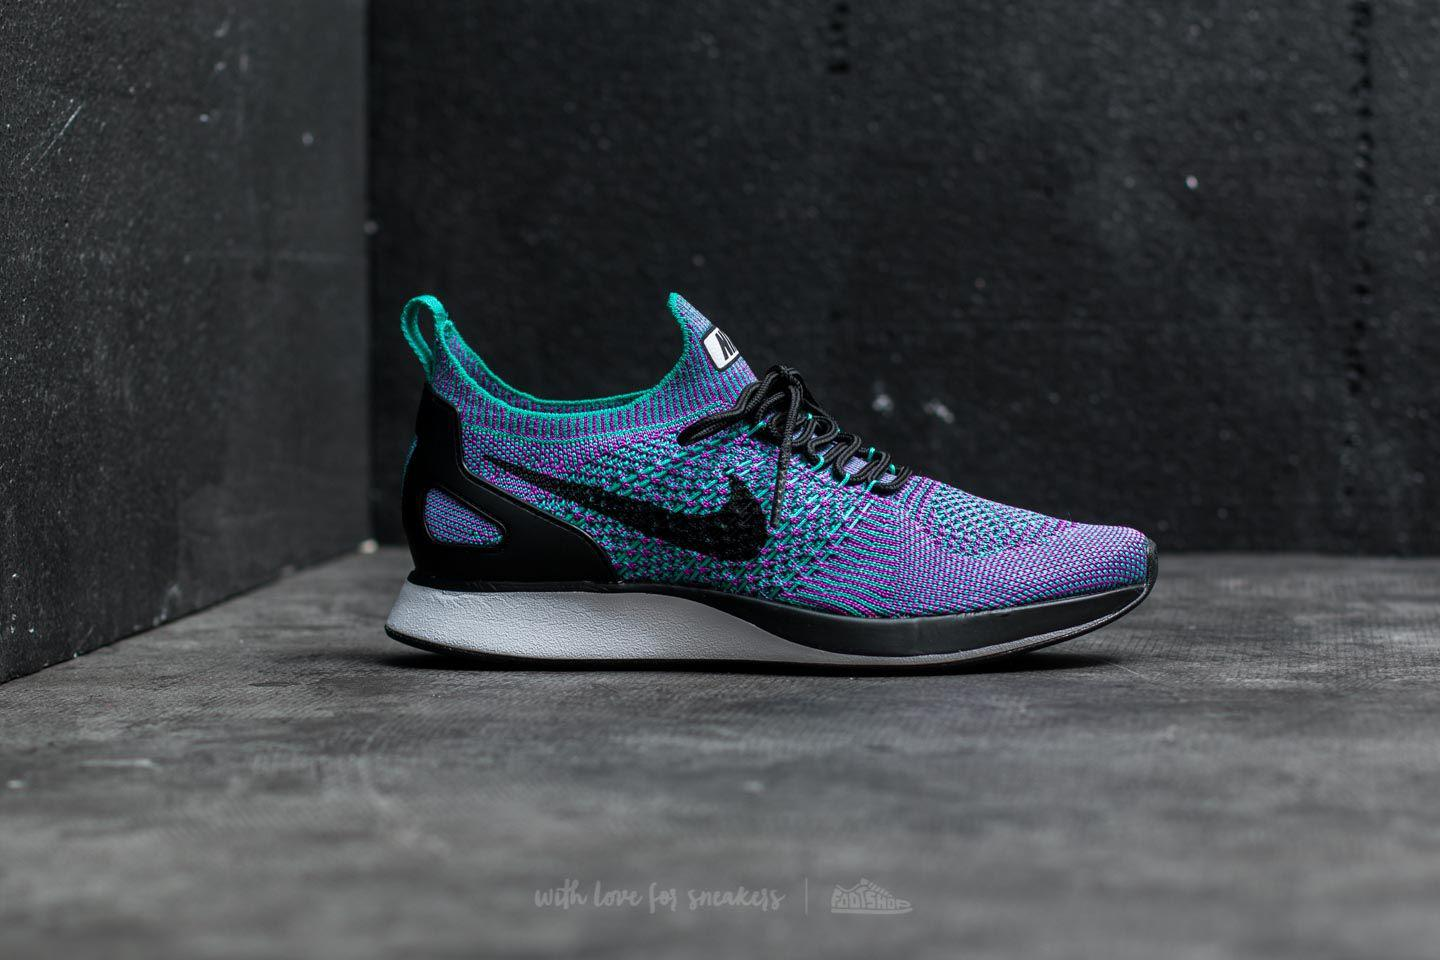 lace up in offer discounts new photos W Air Zoom Mariah Fk Racer Premium Clear Jade/ Black-vivid Purple